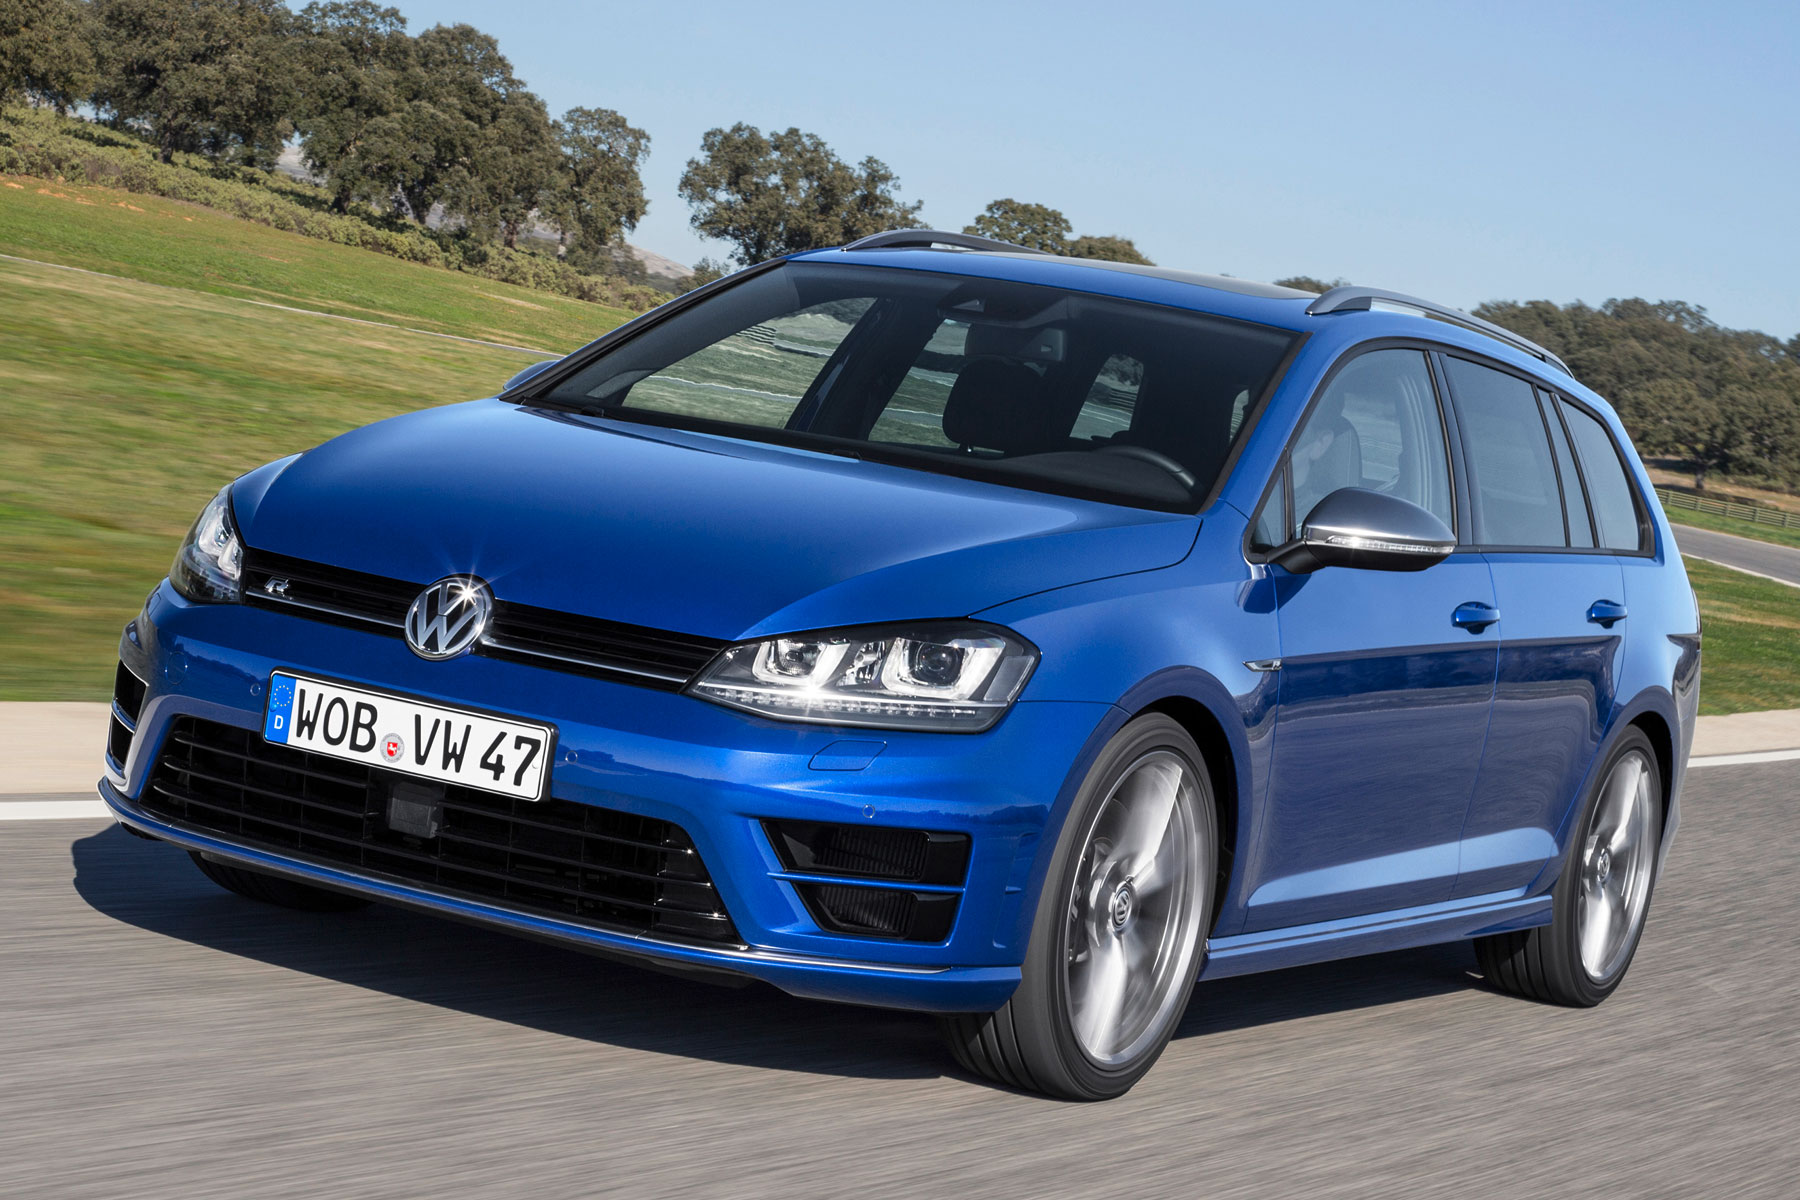 volkswagen golf r estate review 2015 first drive. Black Bedroom Furniture Sets. Home Design Ideas